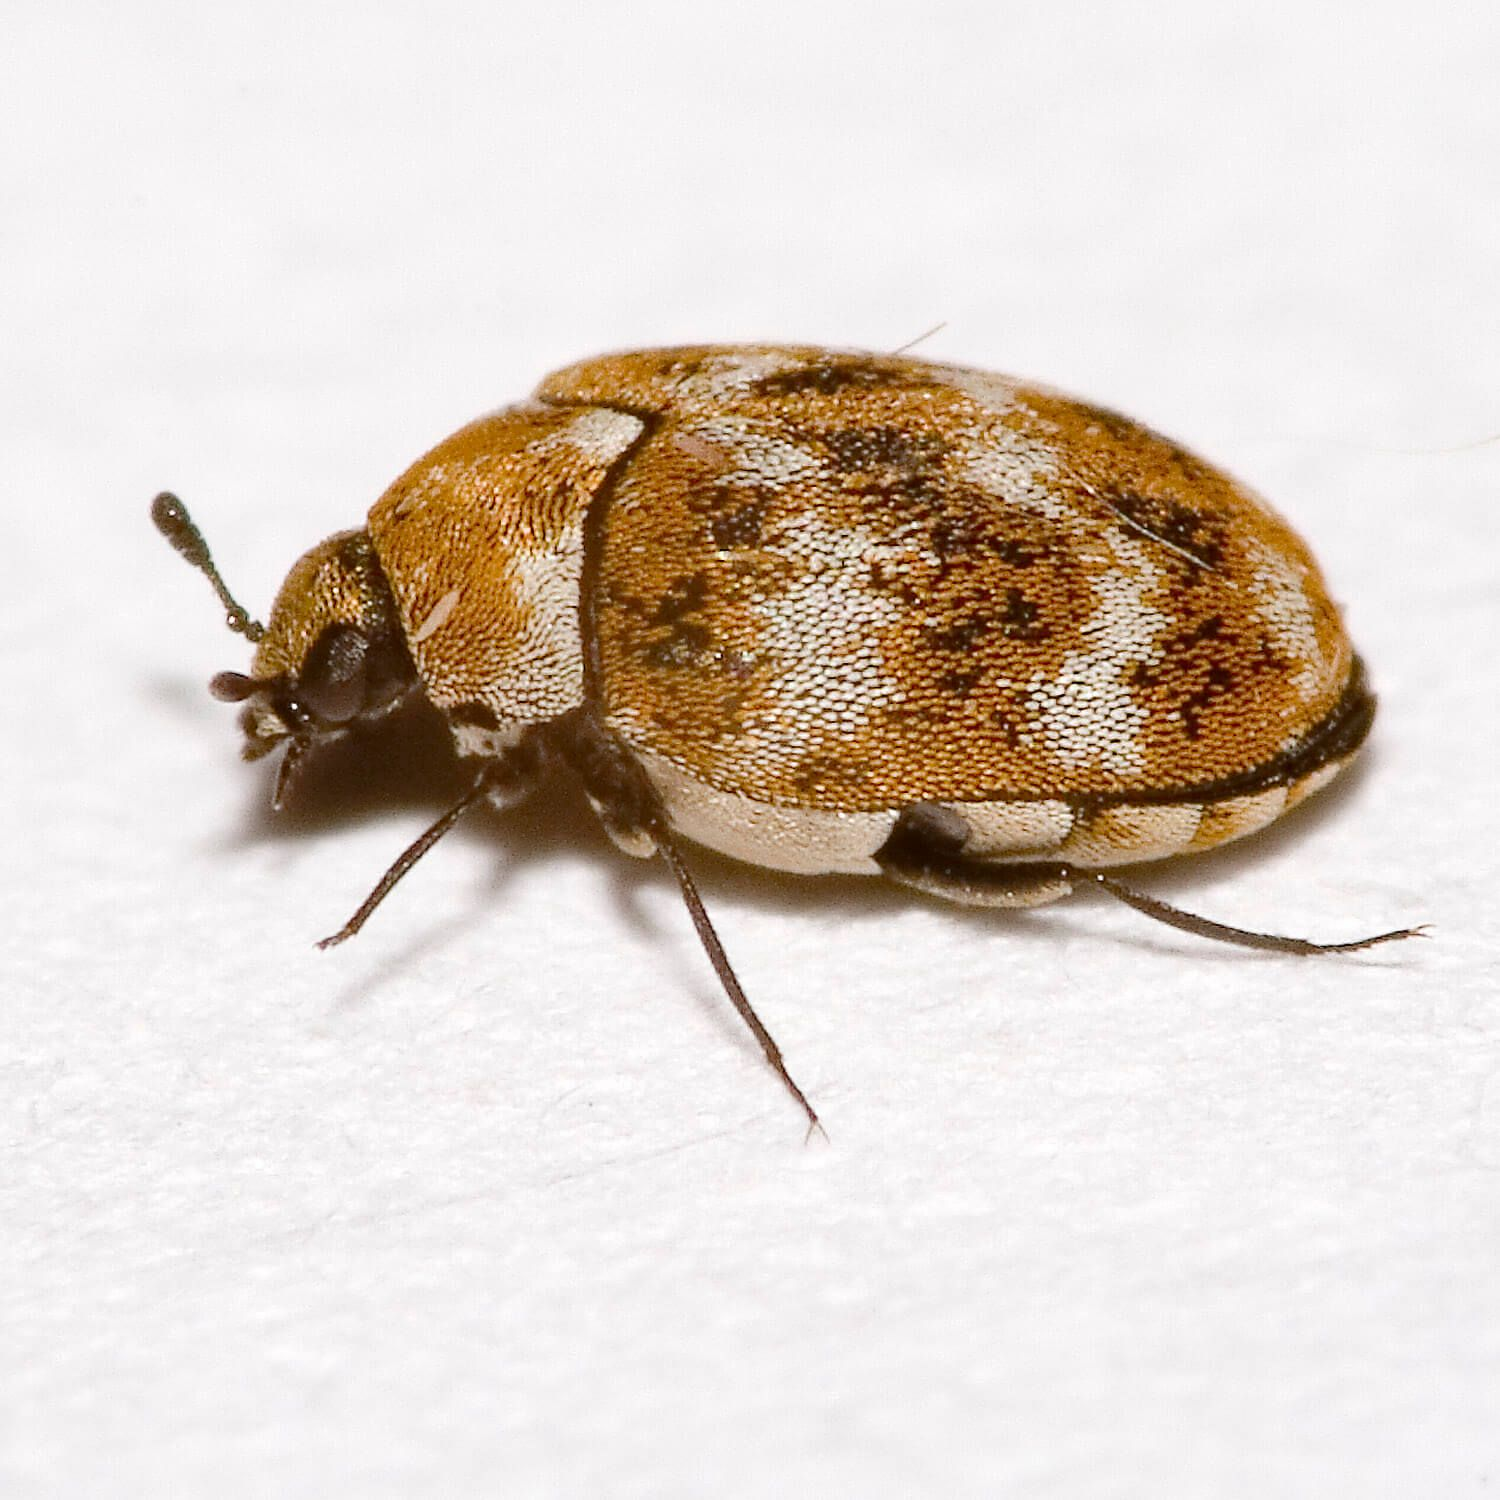 Carpet Beetle Imagine Having Your Lovely Carpets Being Raided By Pests Imagine Your Favorite Piece Of Furniture Being The Insect Photos Beetle Insect Insects